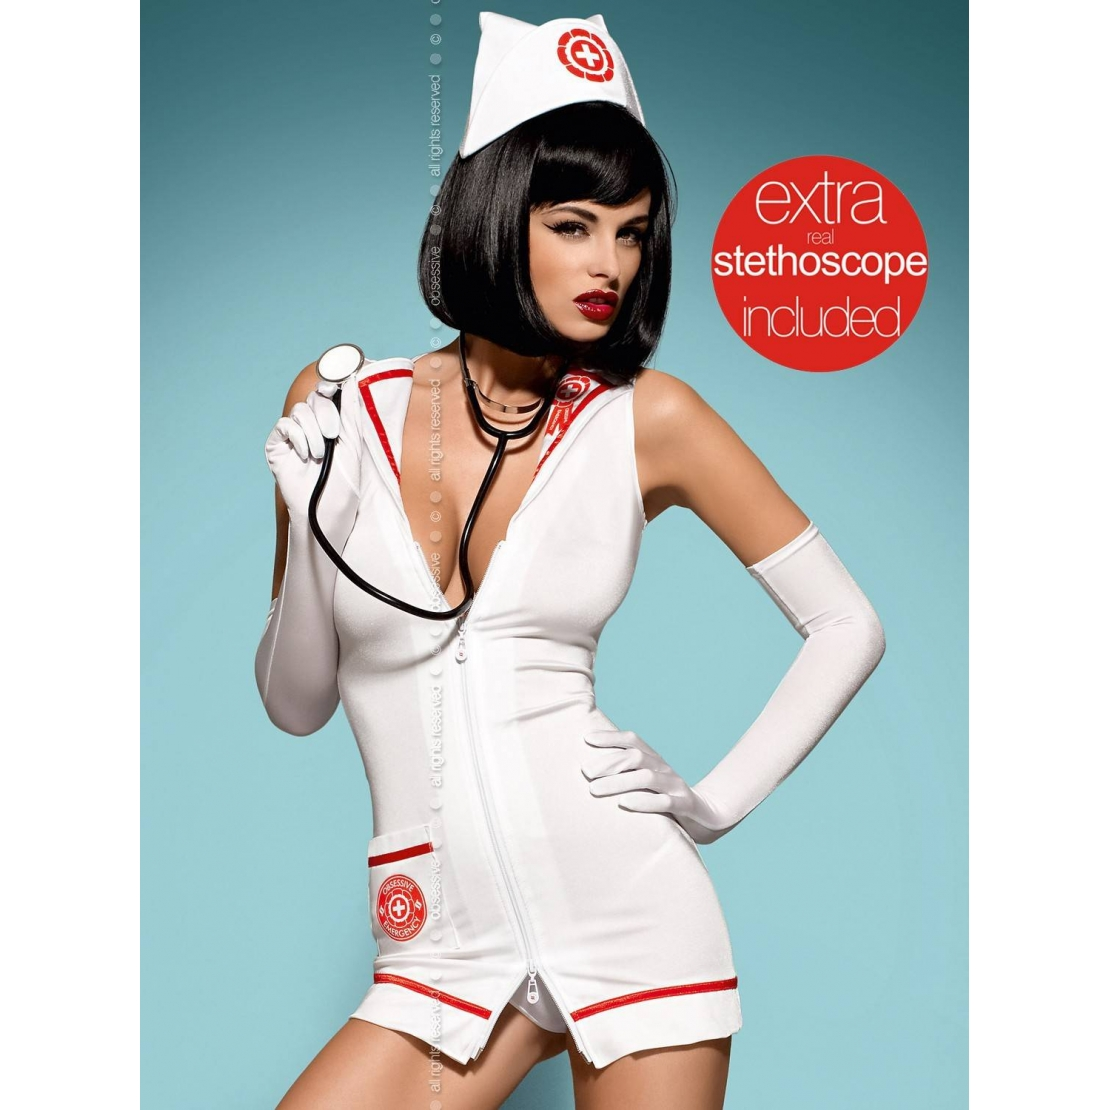 COSTUME INFERMIERA CON STETOSCOPIO EMERGENCY DRESS